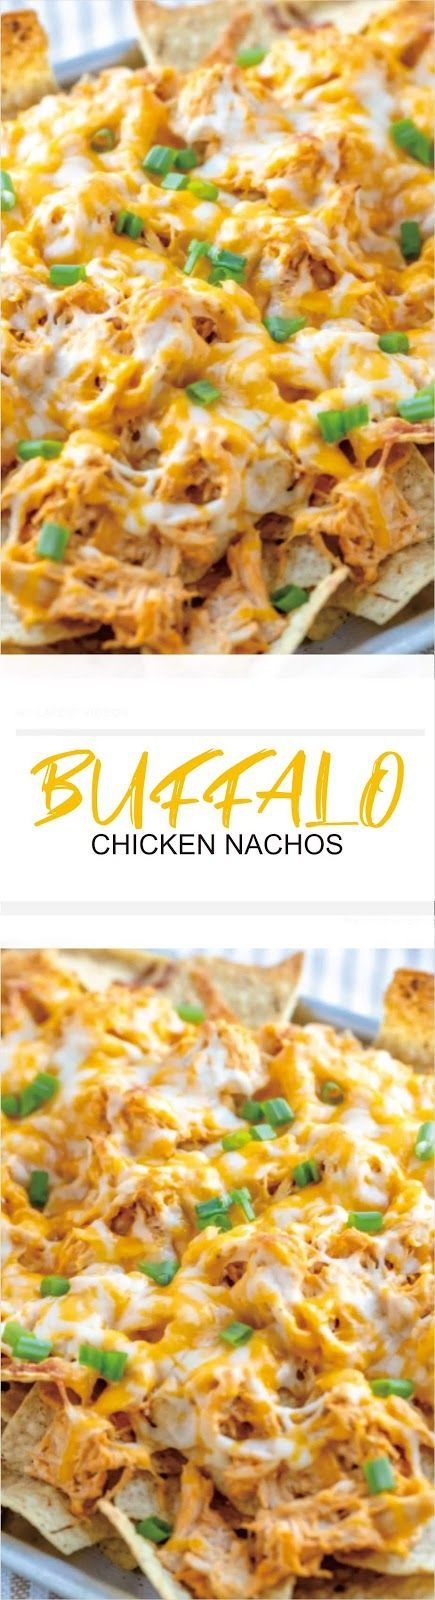 BUFFALO CHICKEN NACHOS | Recipe Spesial Food #buffalochickennachos BUFFALO CHICKEN NACHOS | Recipe Spesial Food #buffalochickennachos